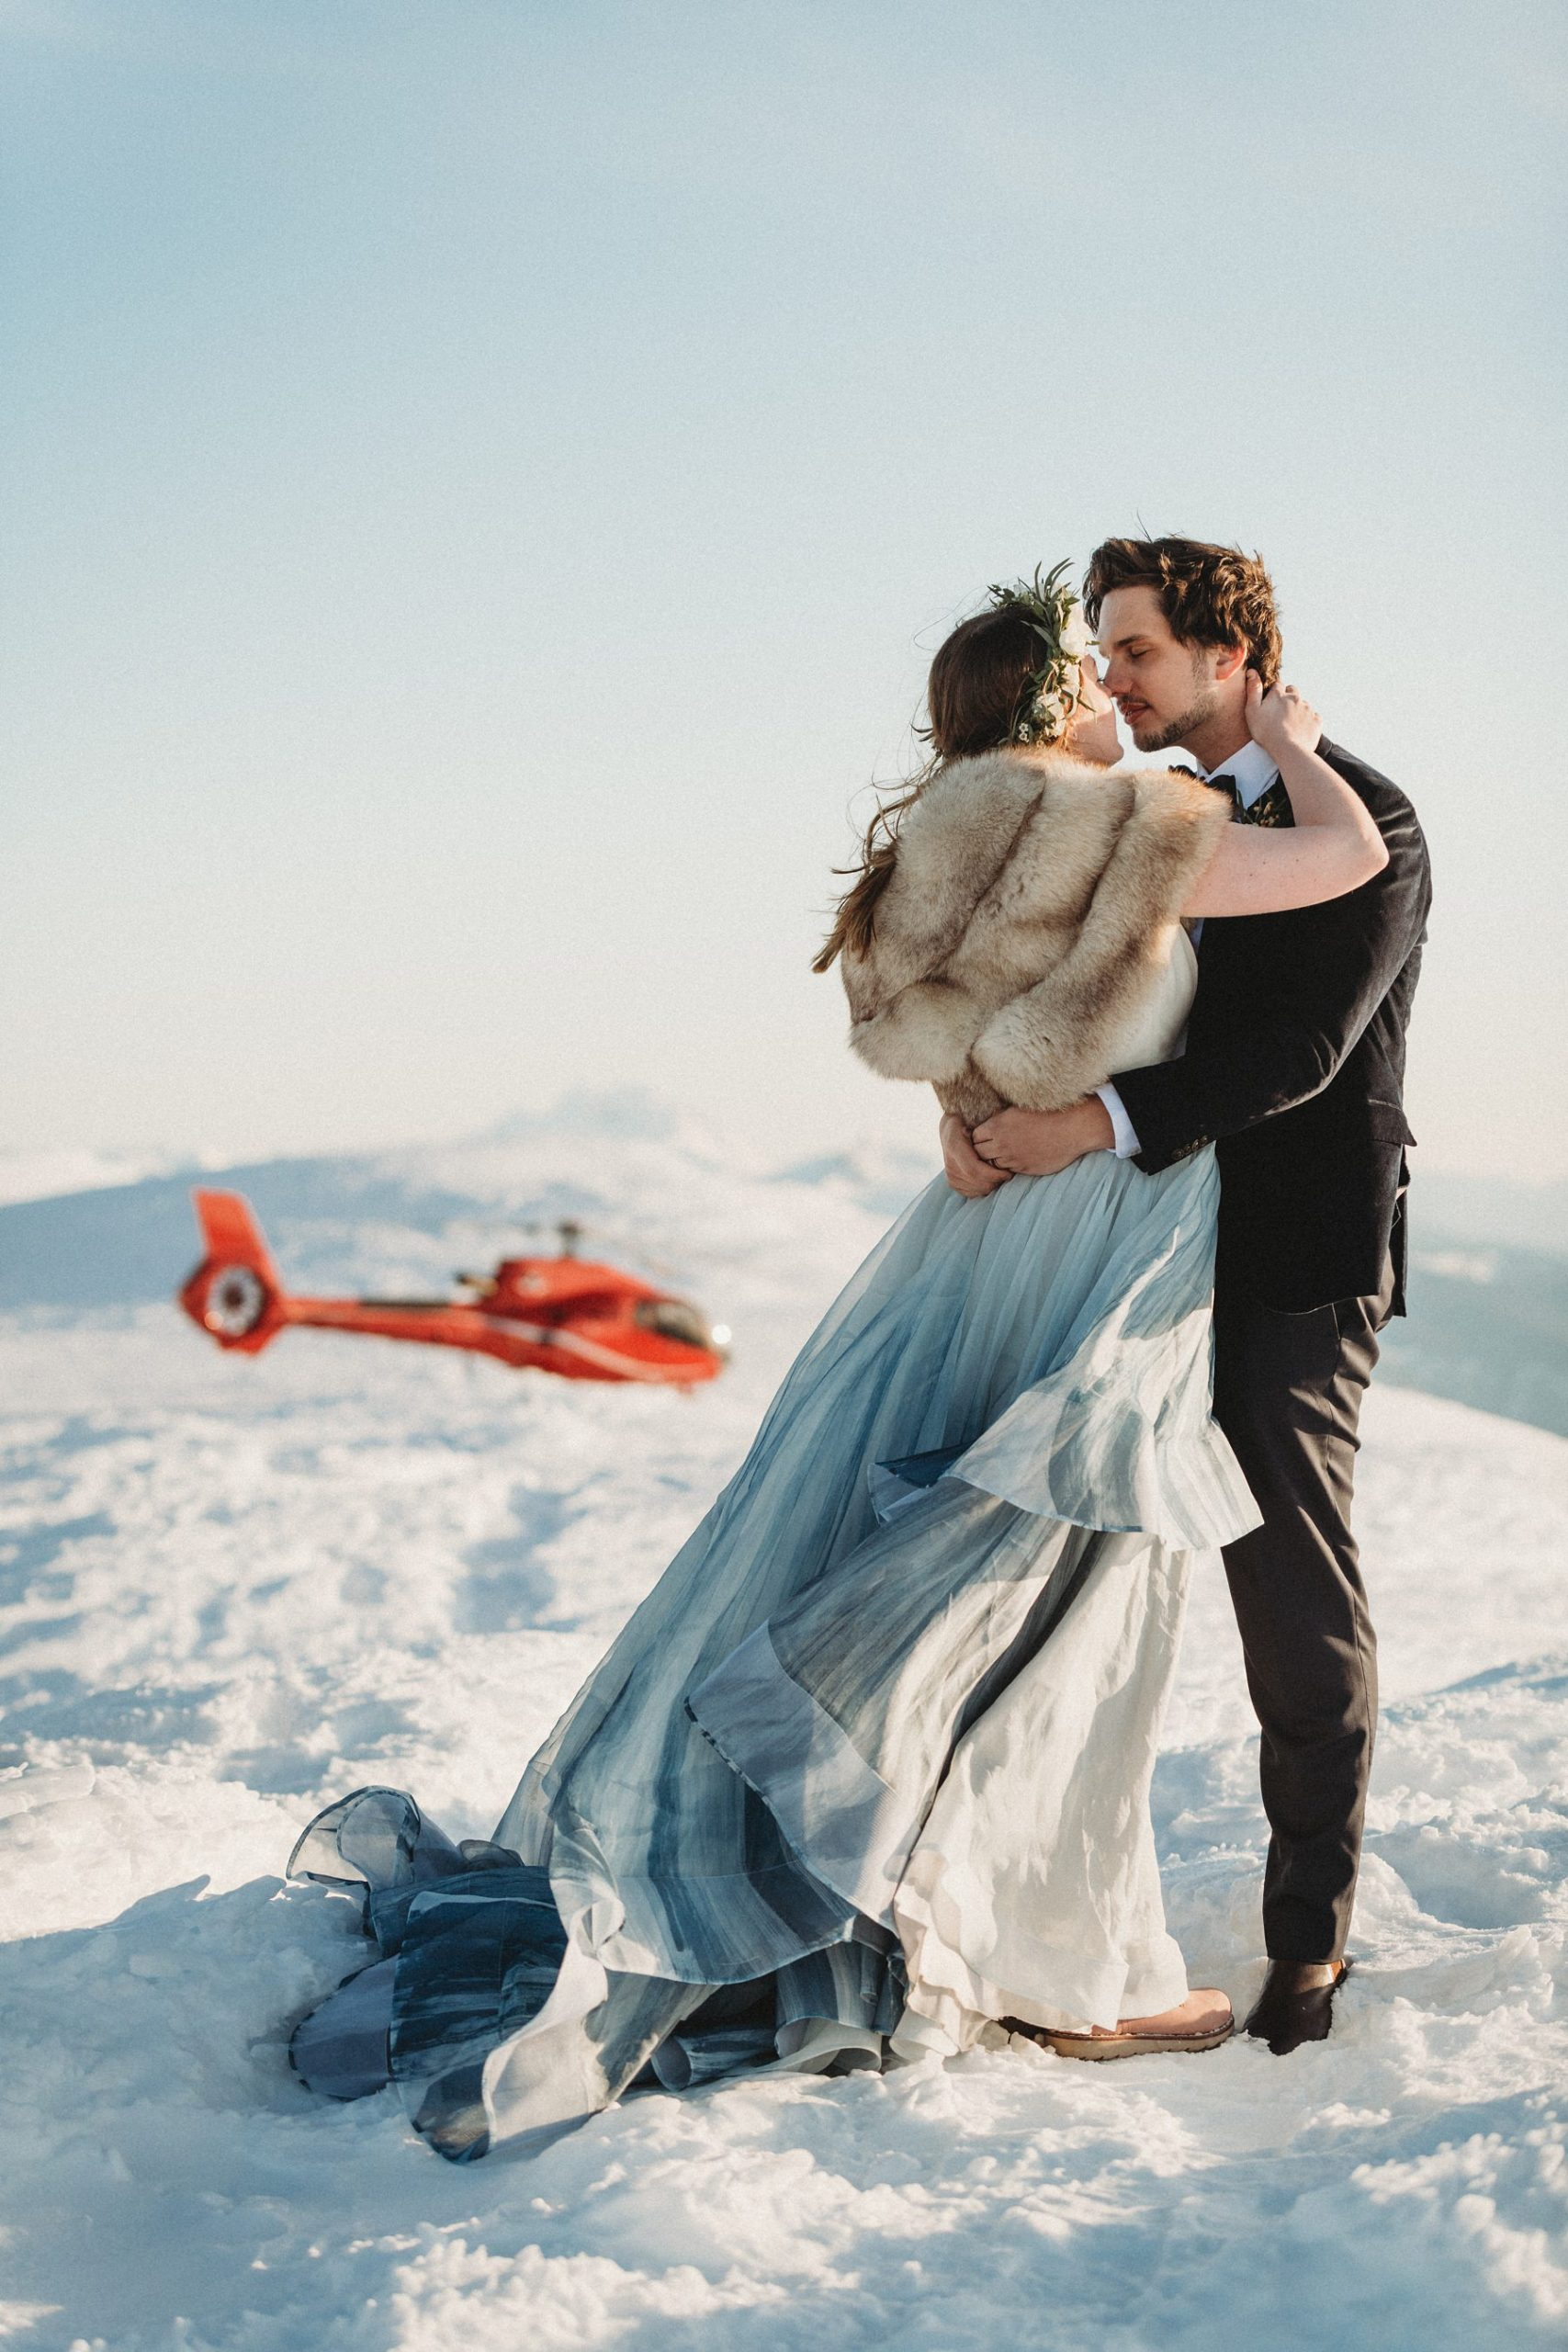 bride and groom and helicopter on mountains